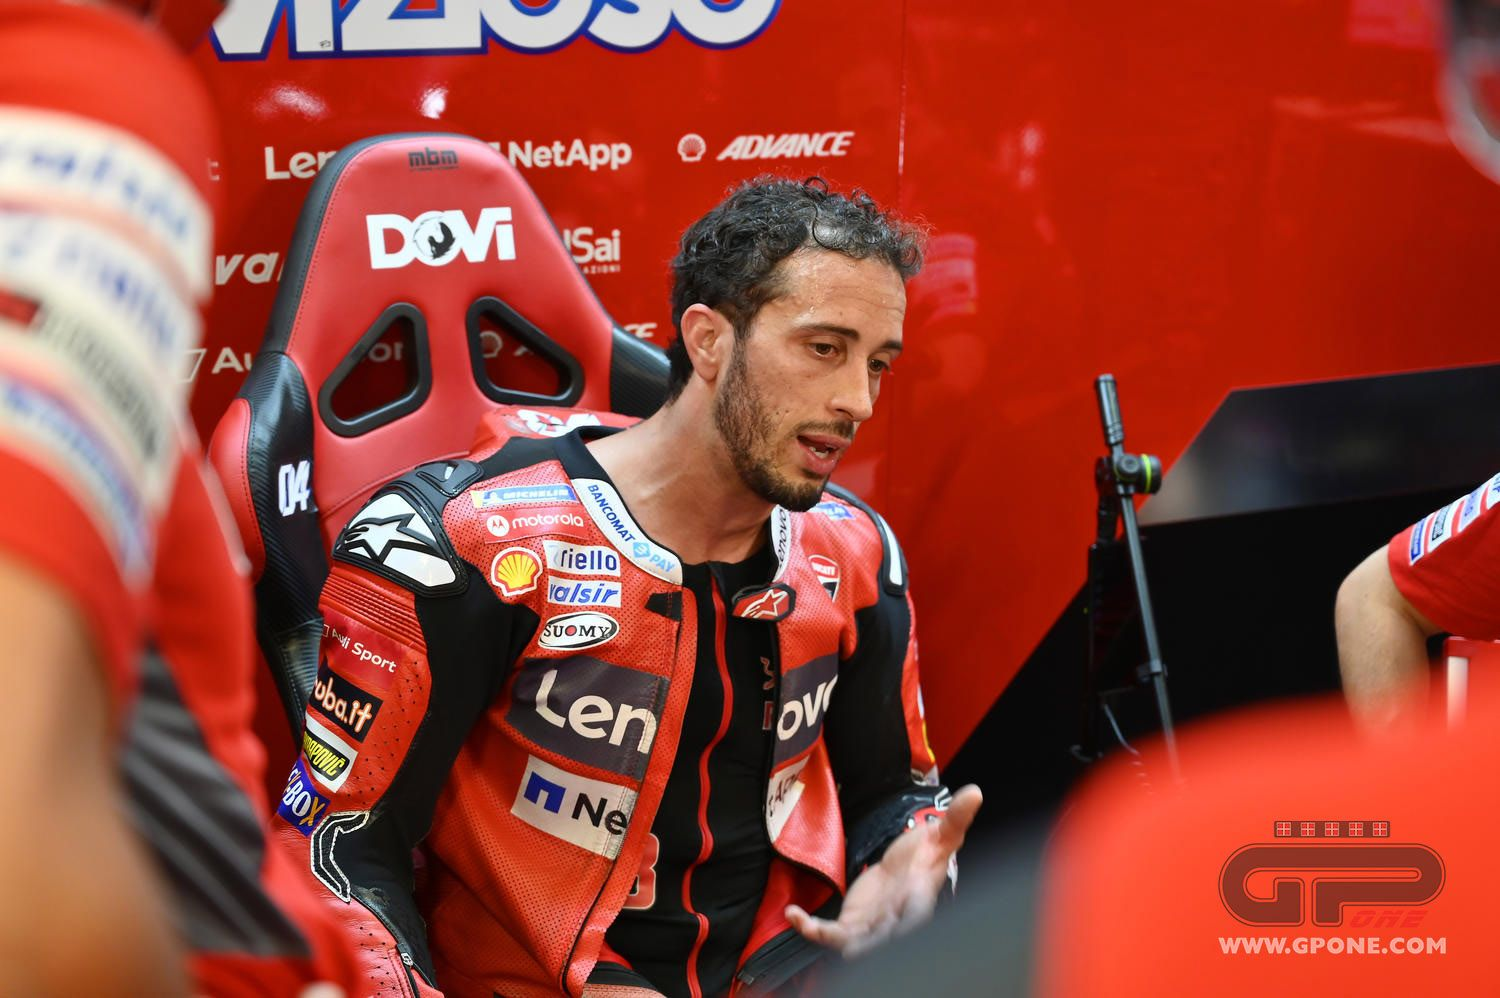 MotoGP, Dovizioso's crisis: I look at the classification and laugh. I'm first by going slowly - GPone English